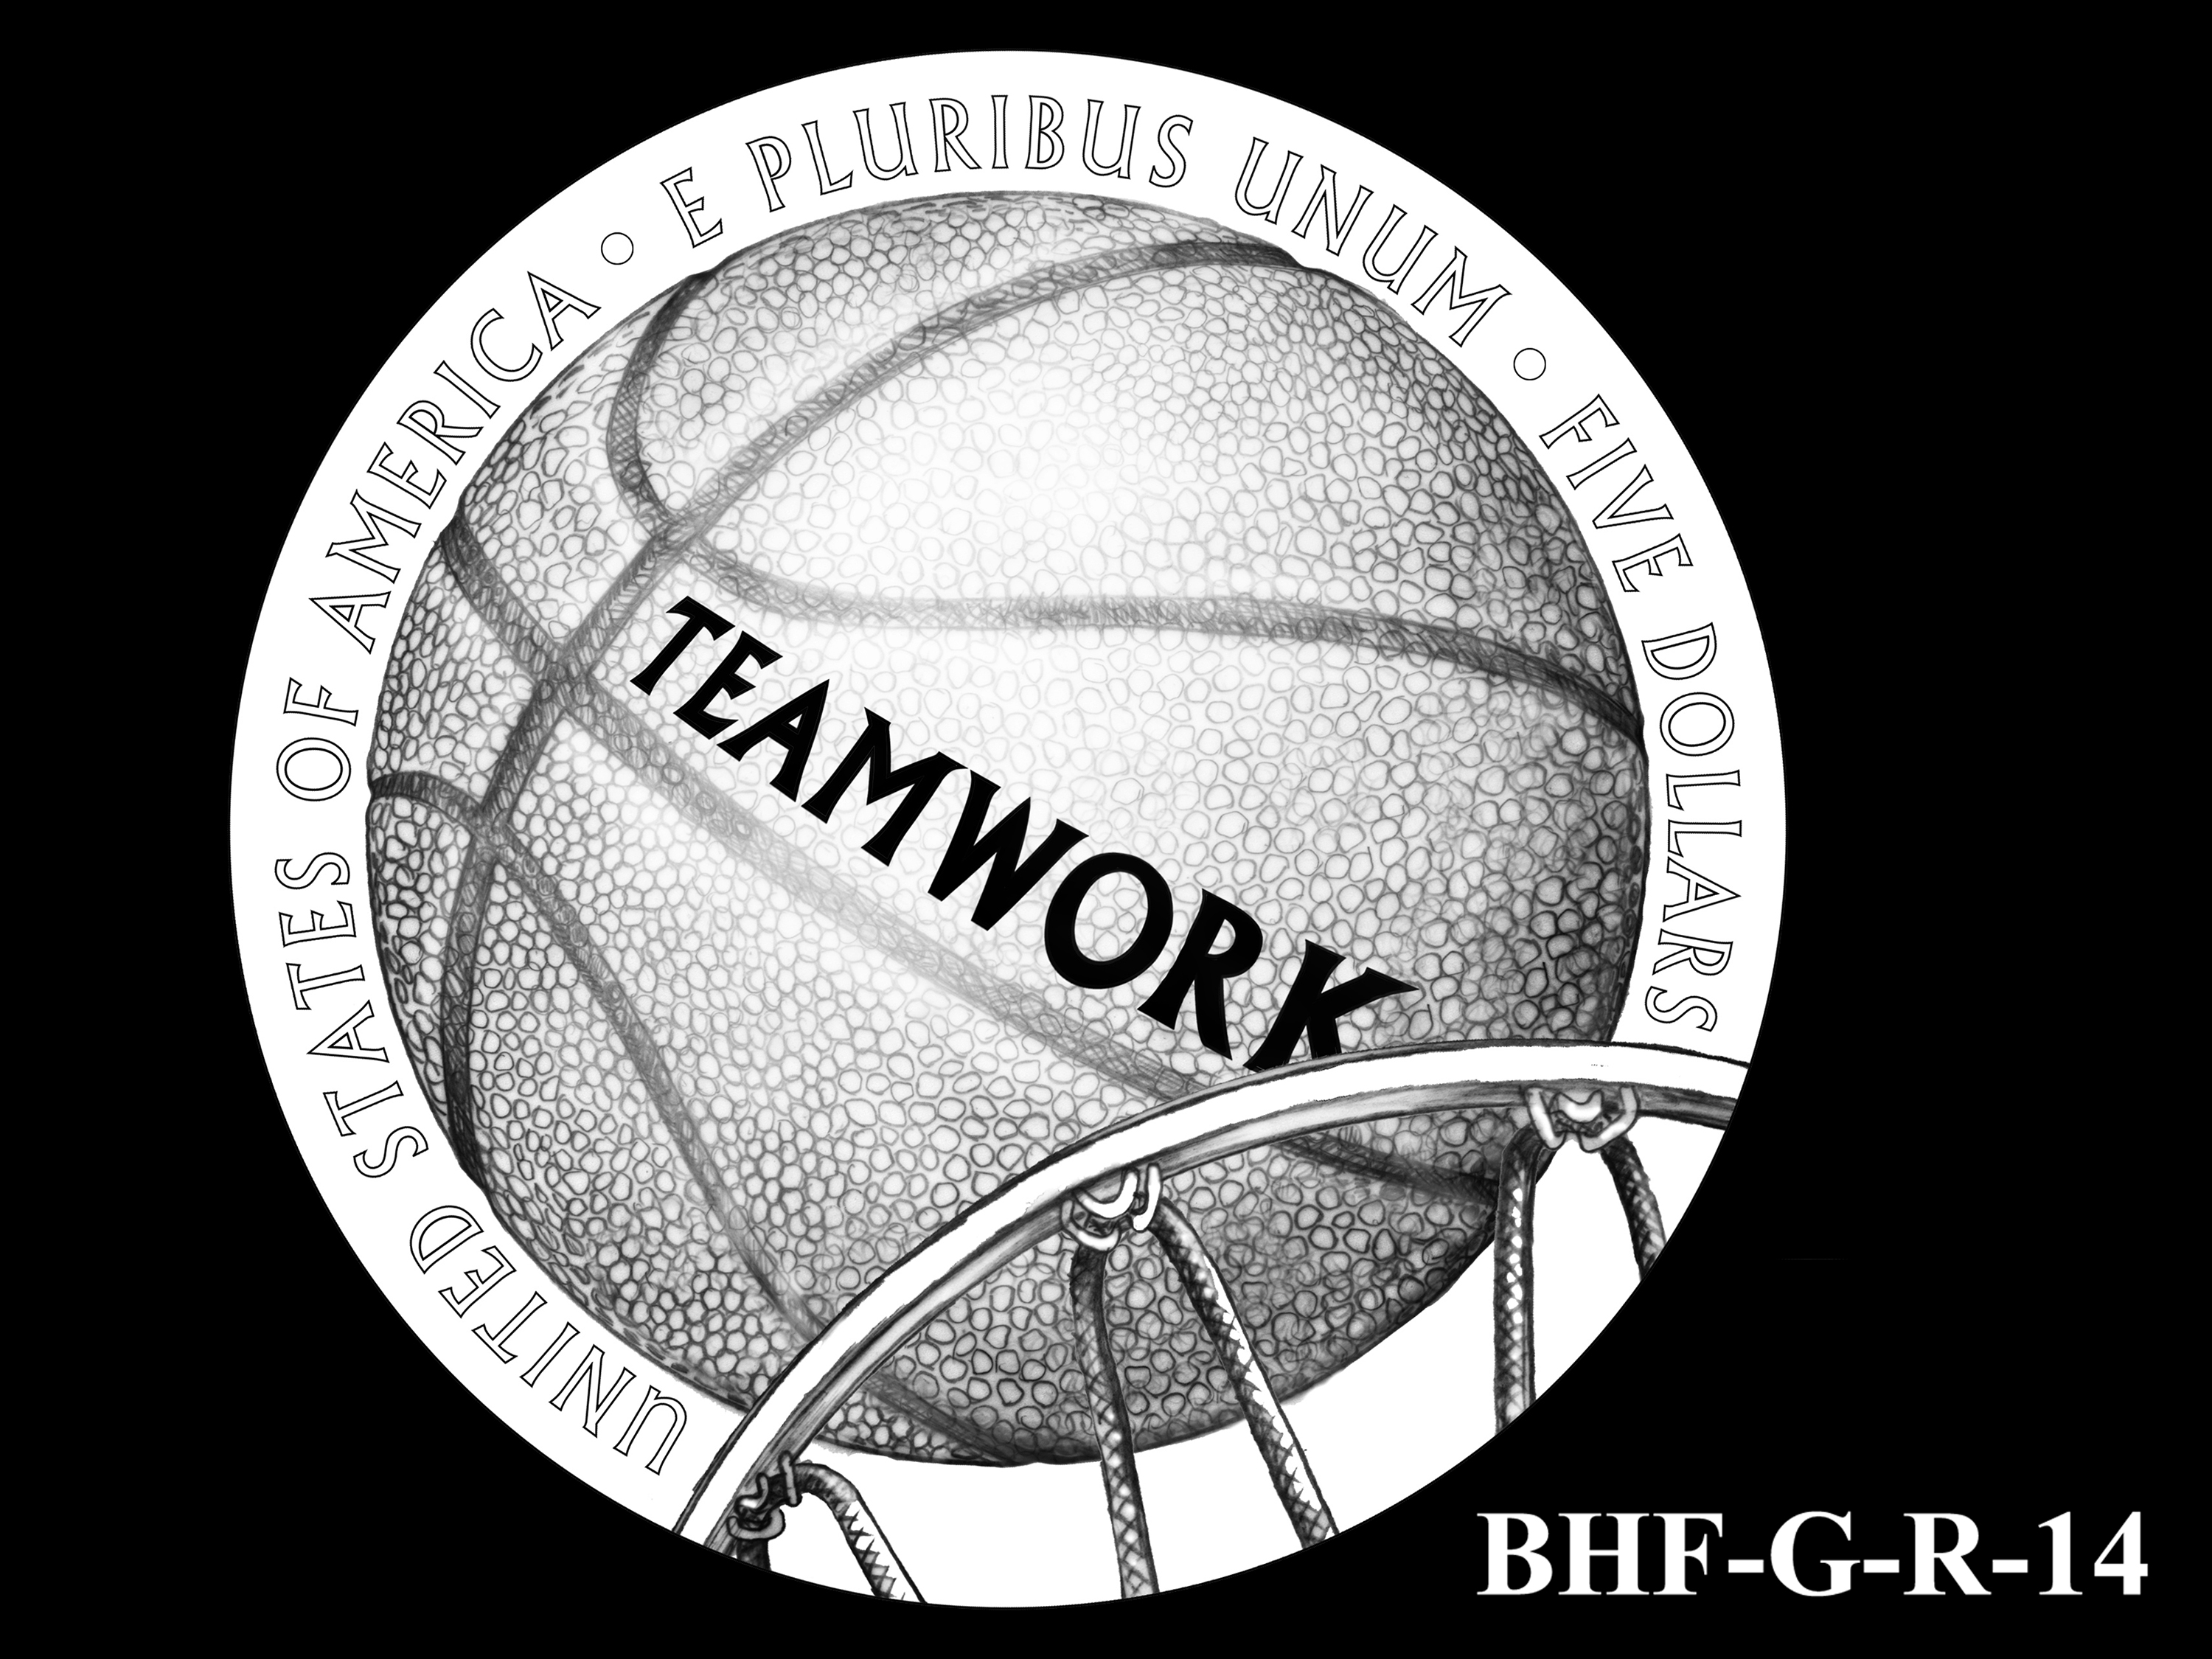 BHF-G-R-14 -- 2020 Basketball Hall of Fame Commemorative Coin Program - Gold Reverse